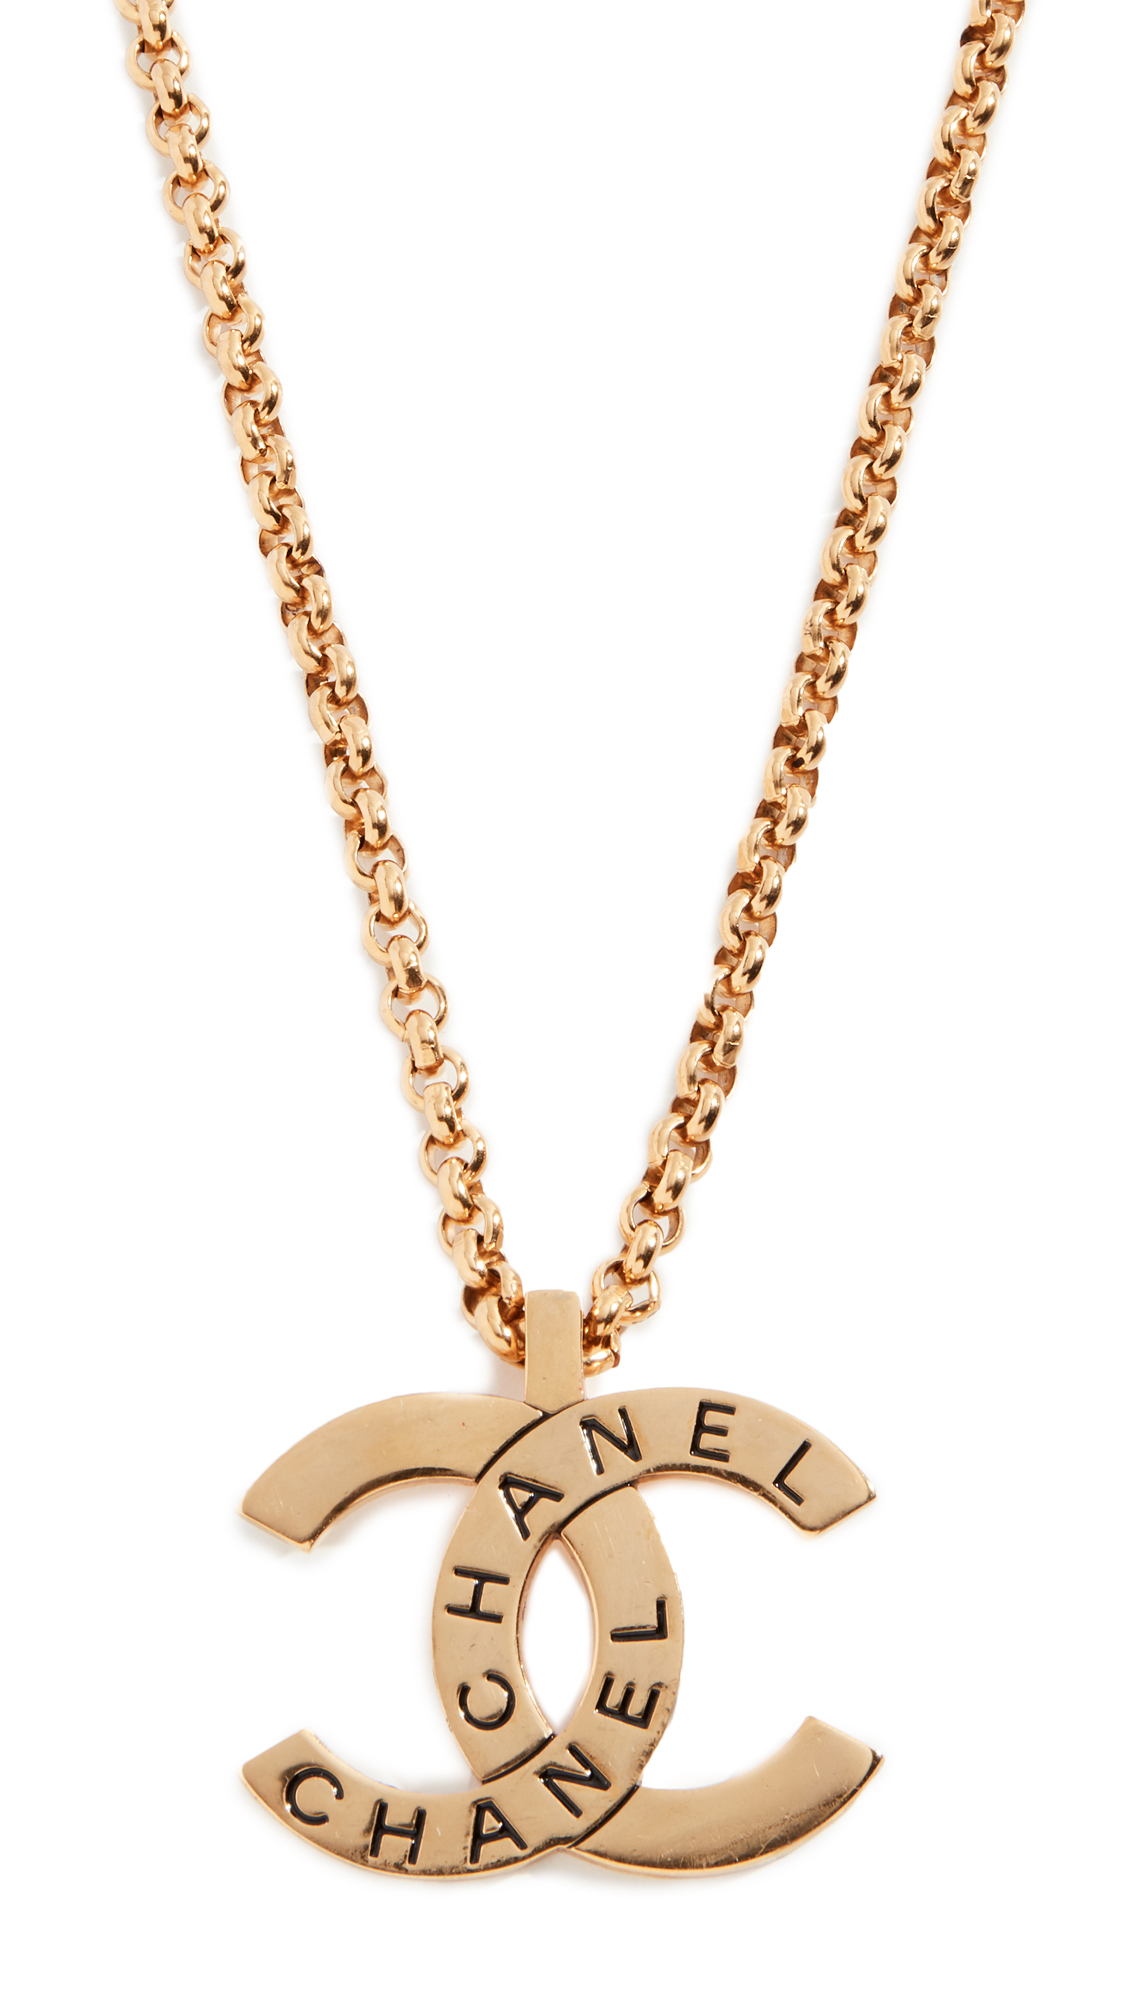 WHAT GOES AROUND COMES AROUND CHANEL GOLD CC PENDANT NECKLACE